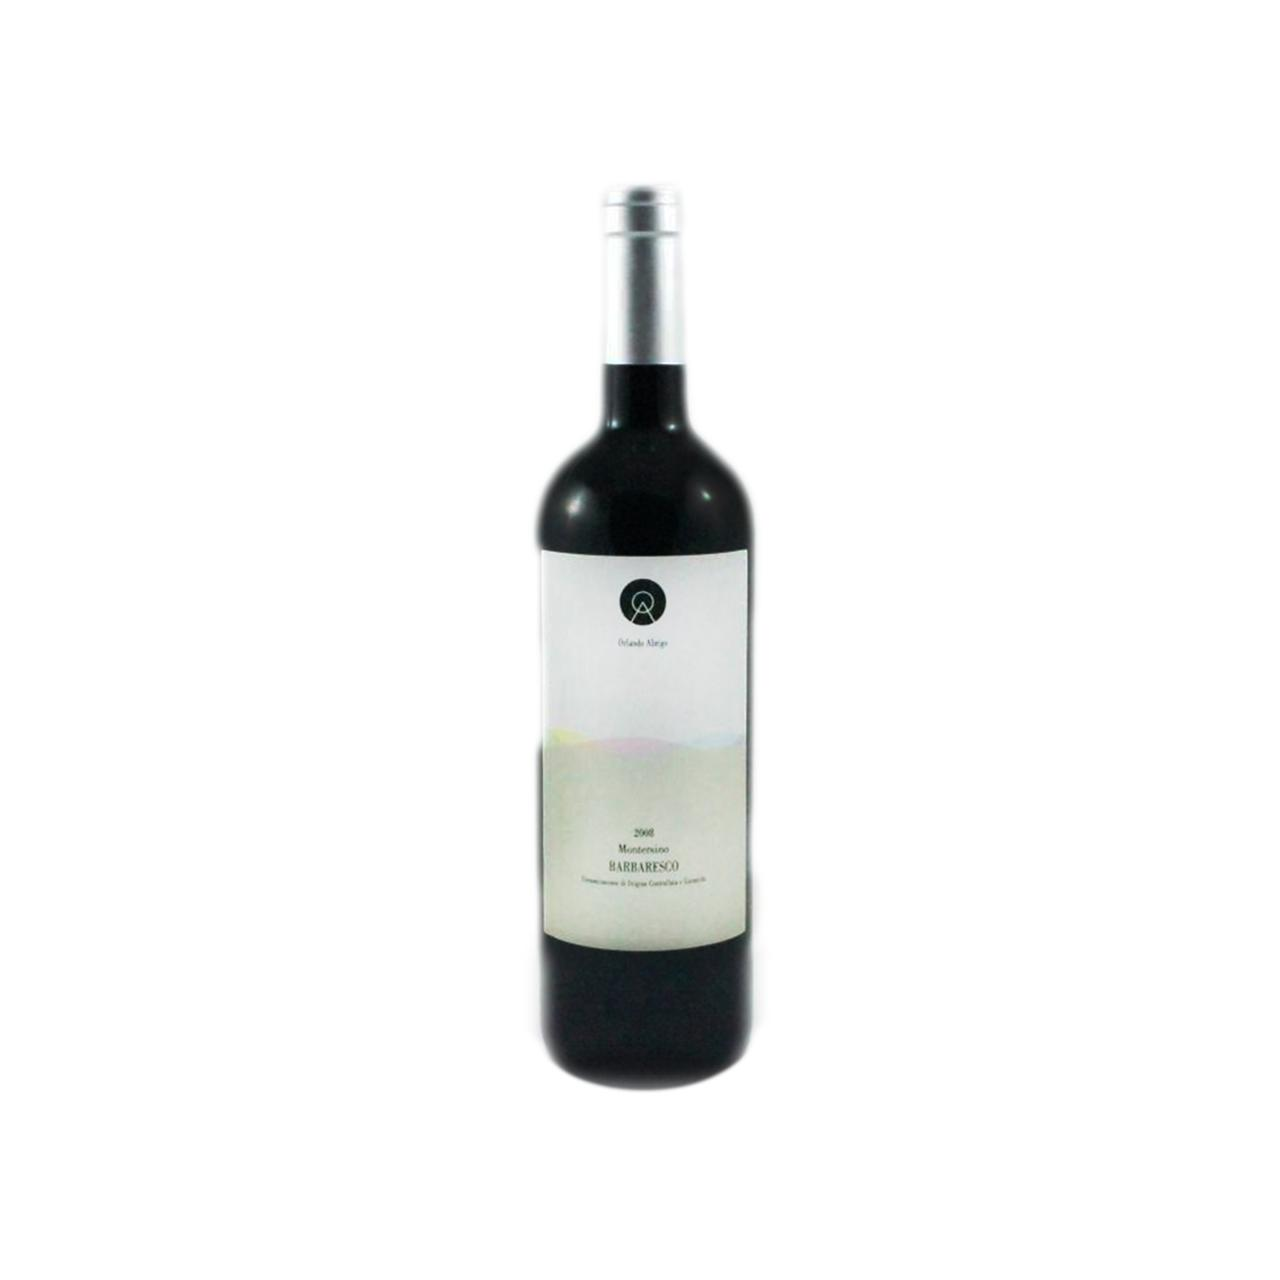 Barbaresco Montersino 2009